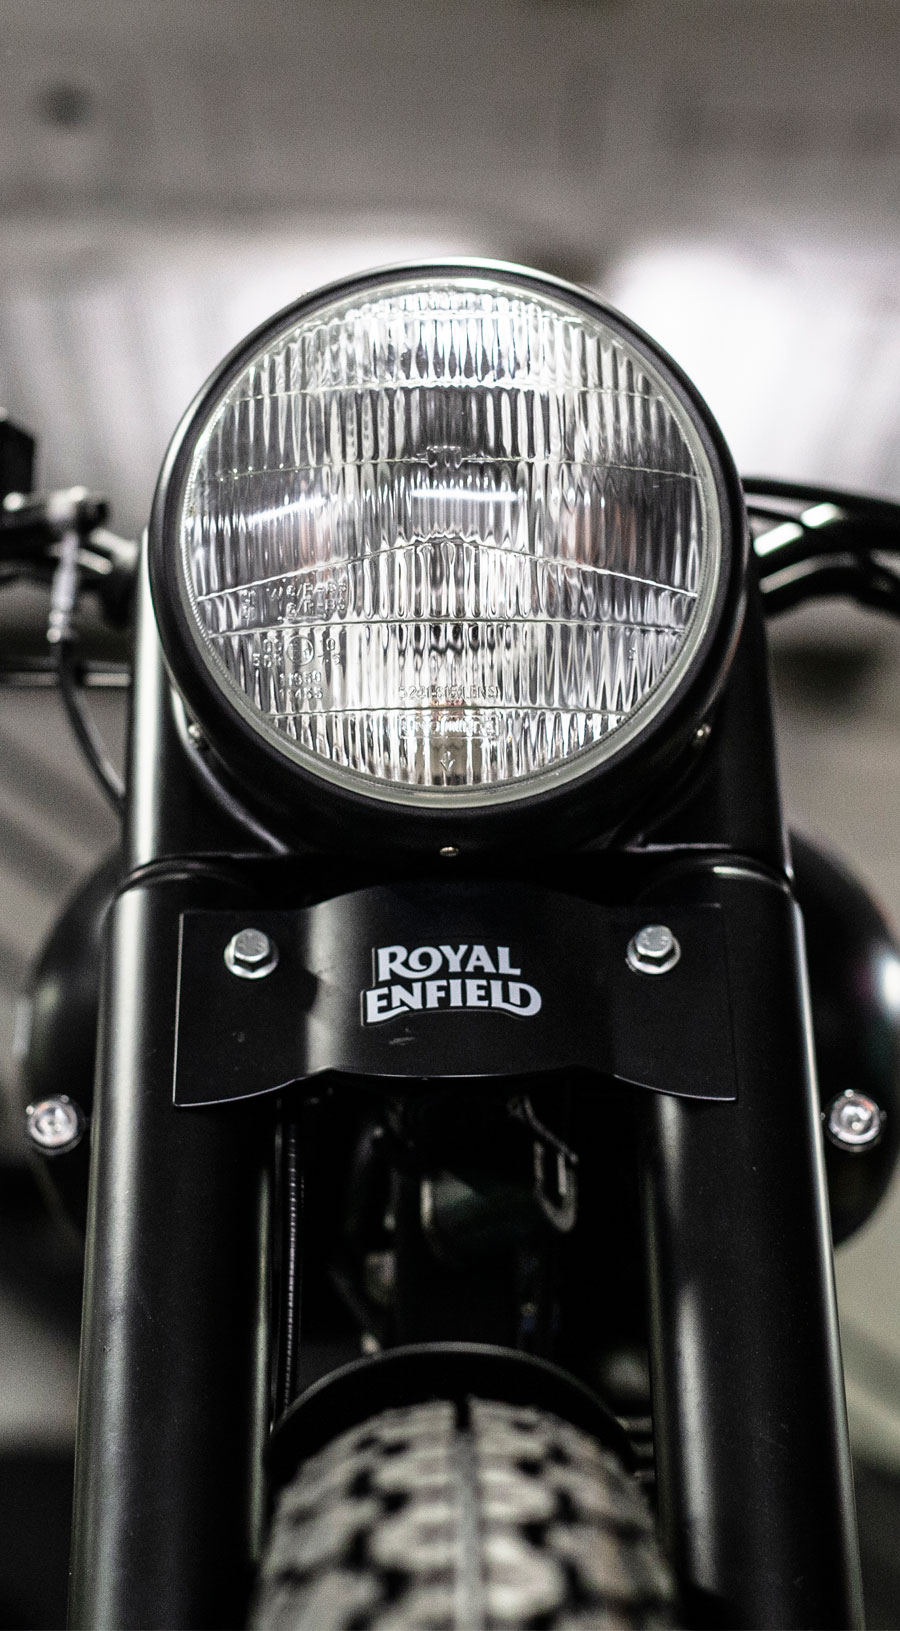 rcdept-article-royal-enfield-1